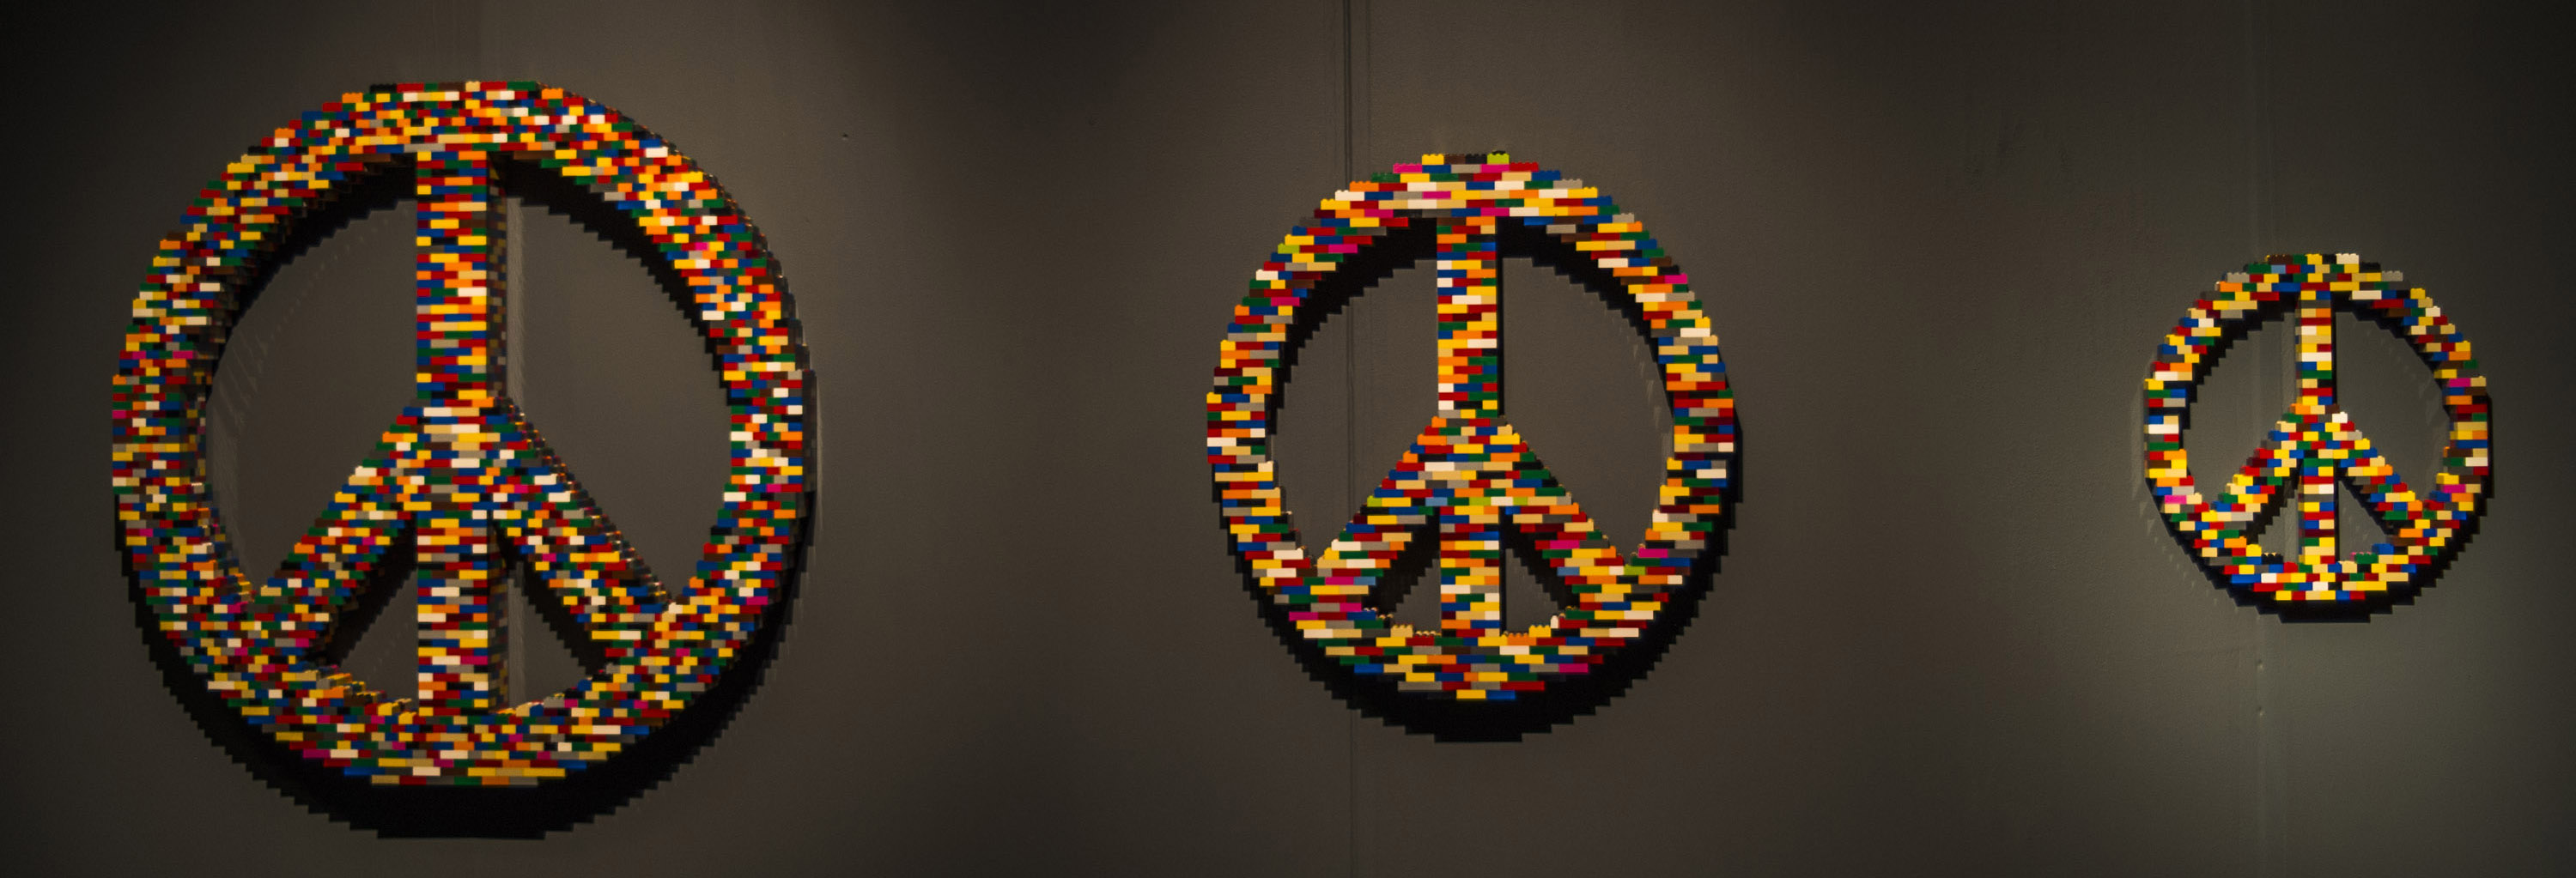 The Art of the Brick, LEGO_0025